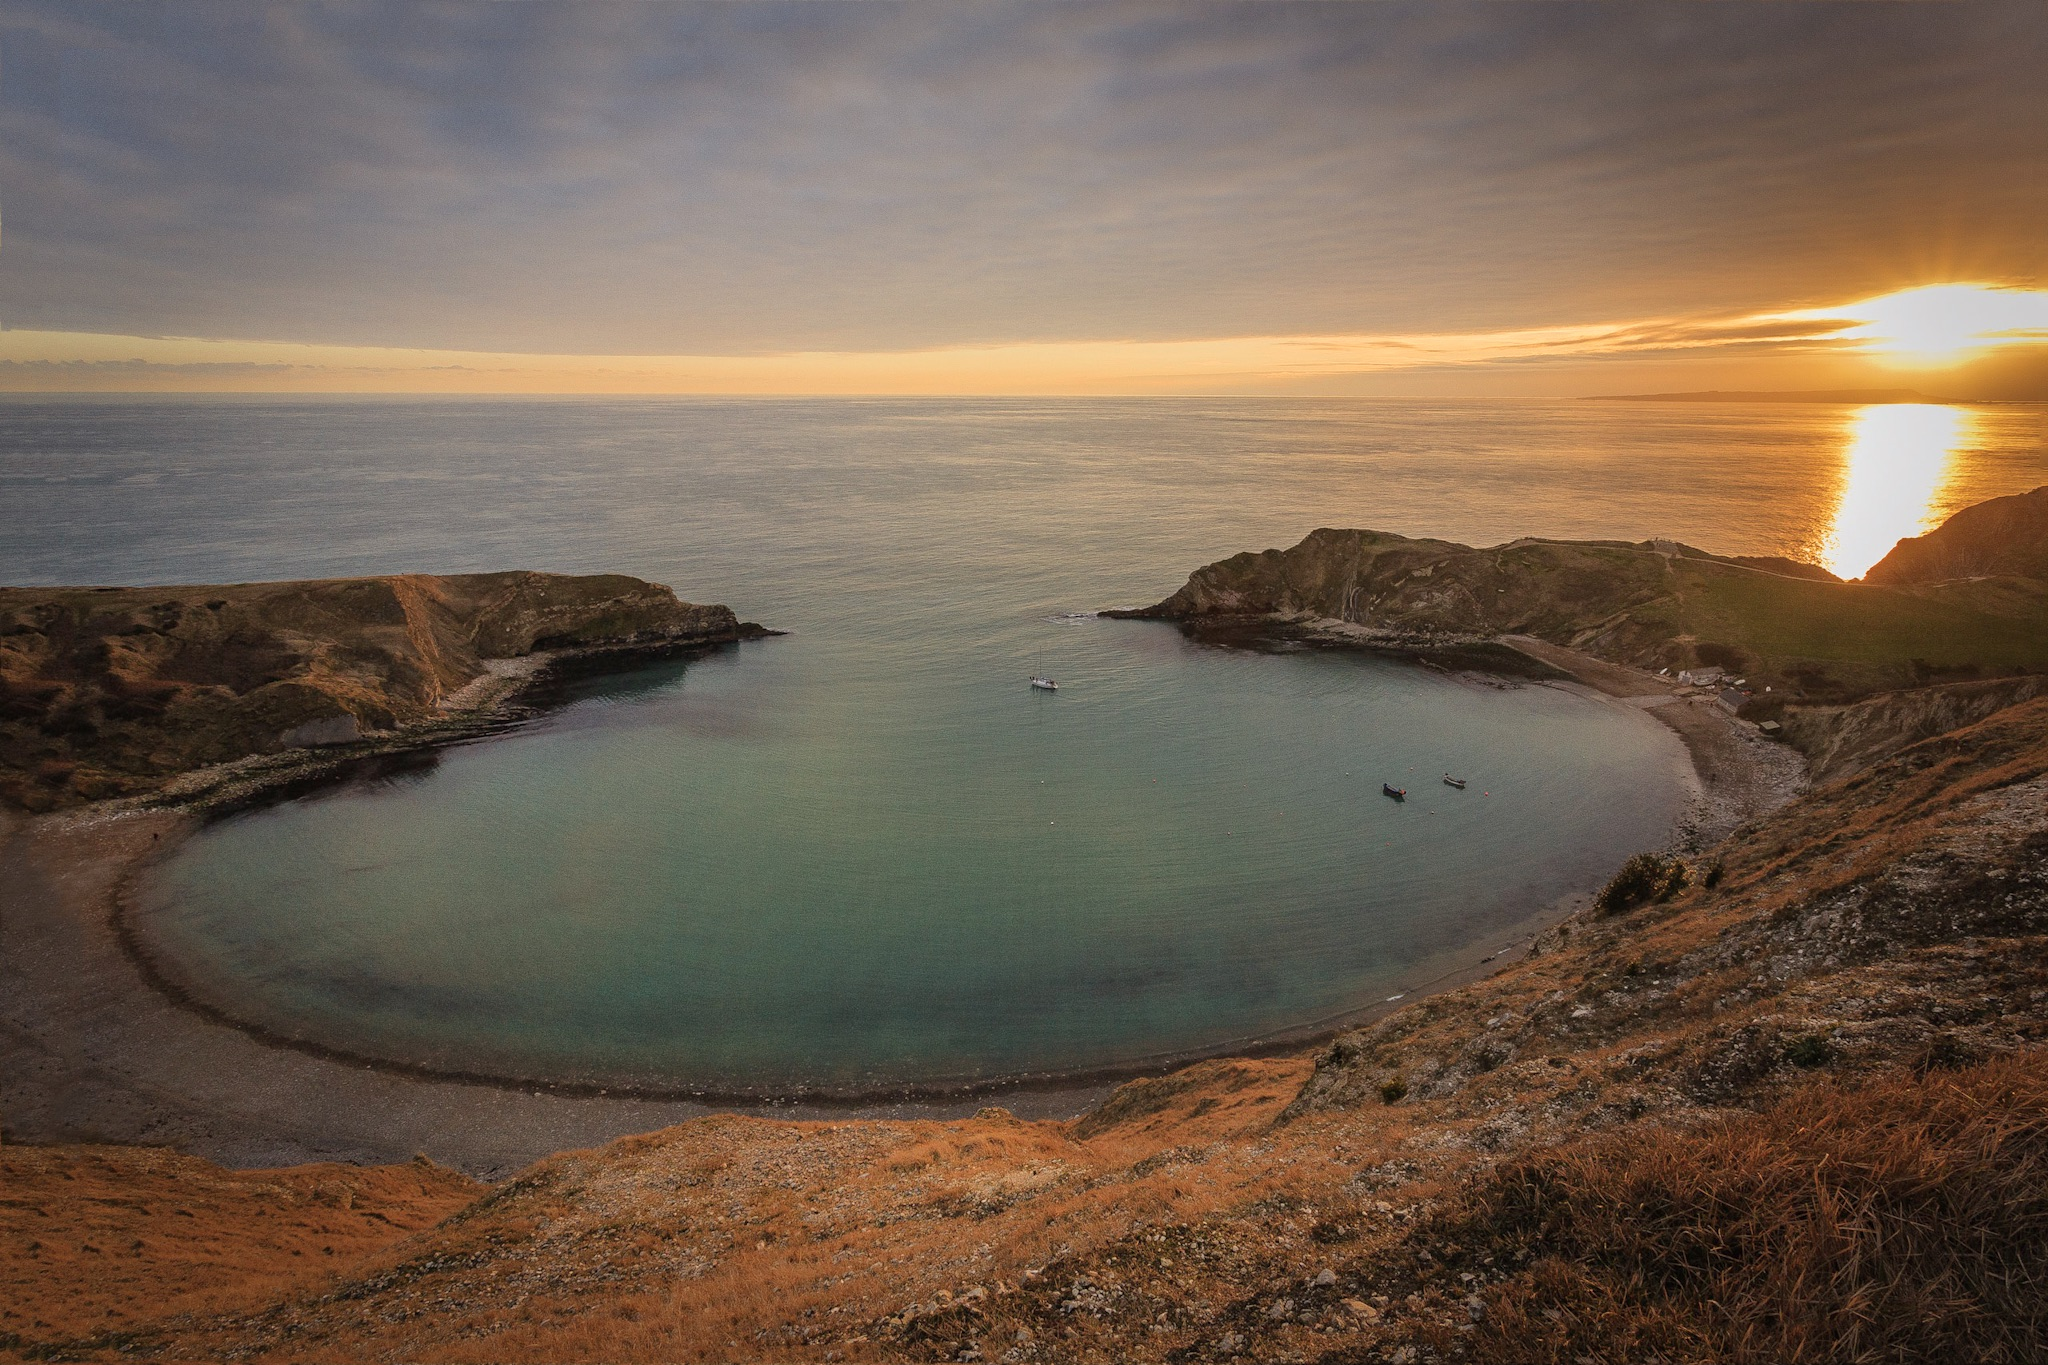 Lulworth Cove at sunset